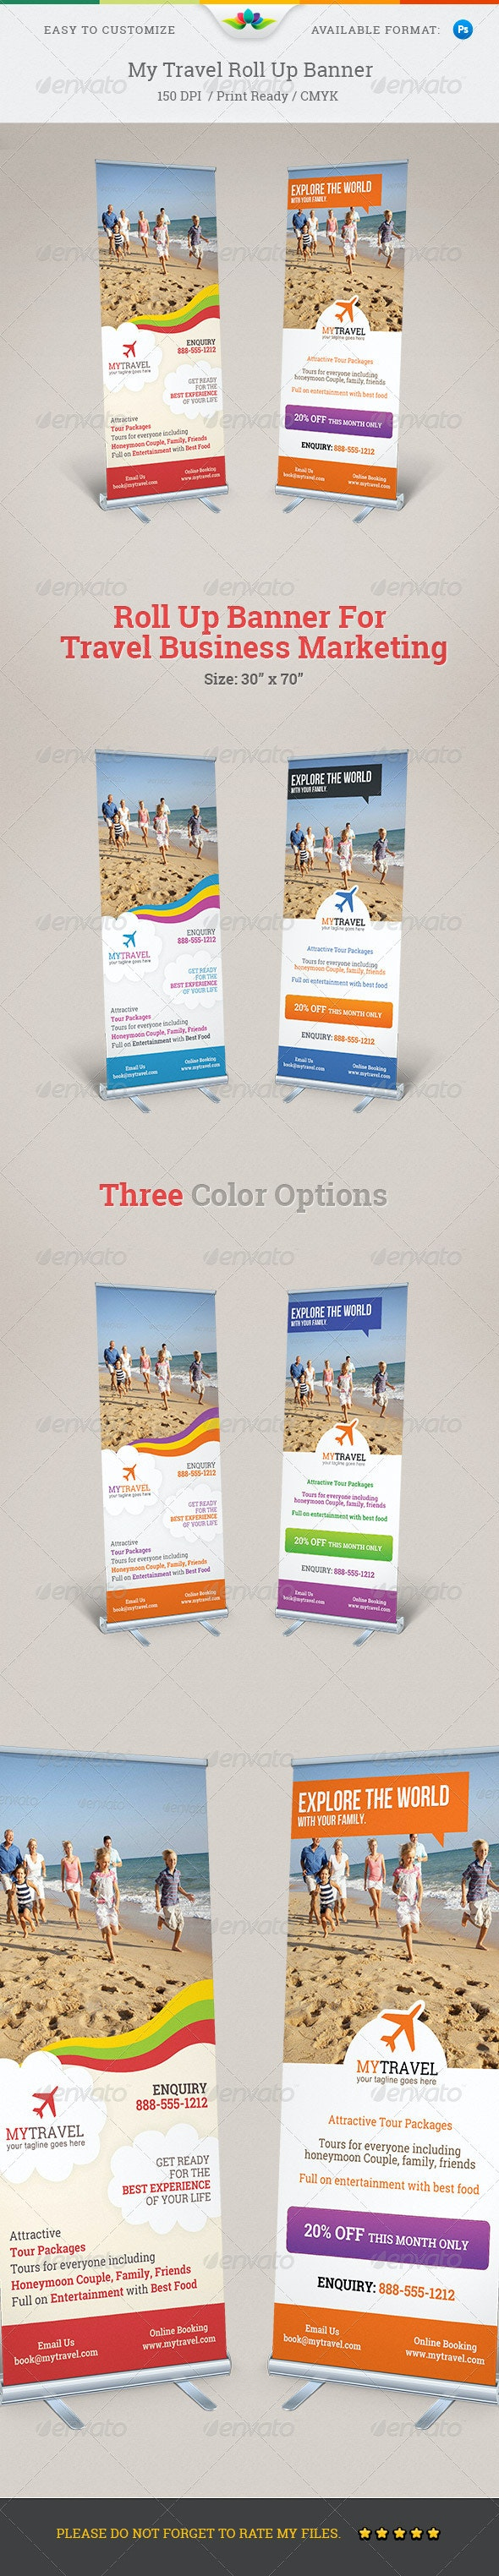 My Travel Roll Up Banner  - Signage Print Templates